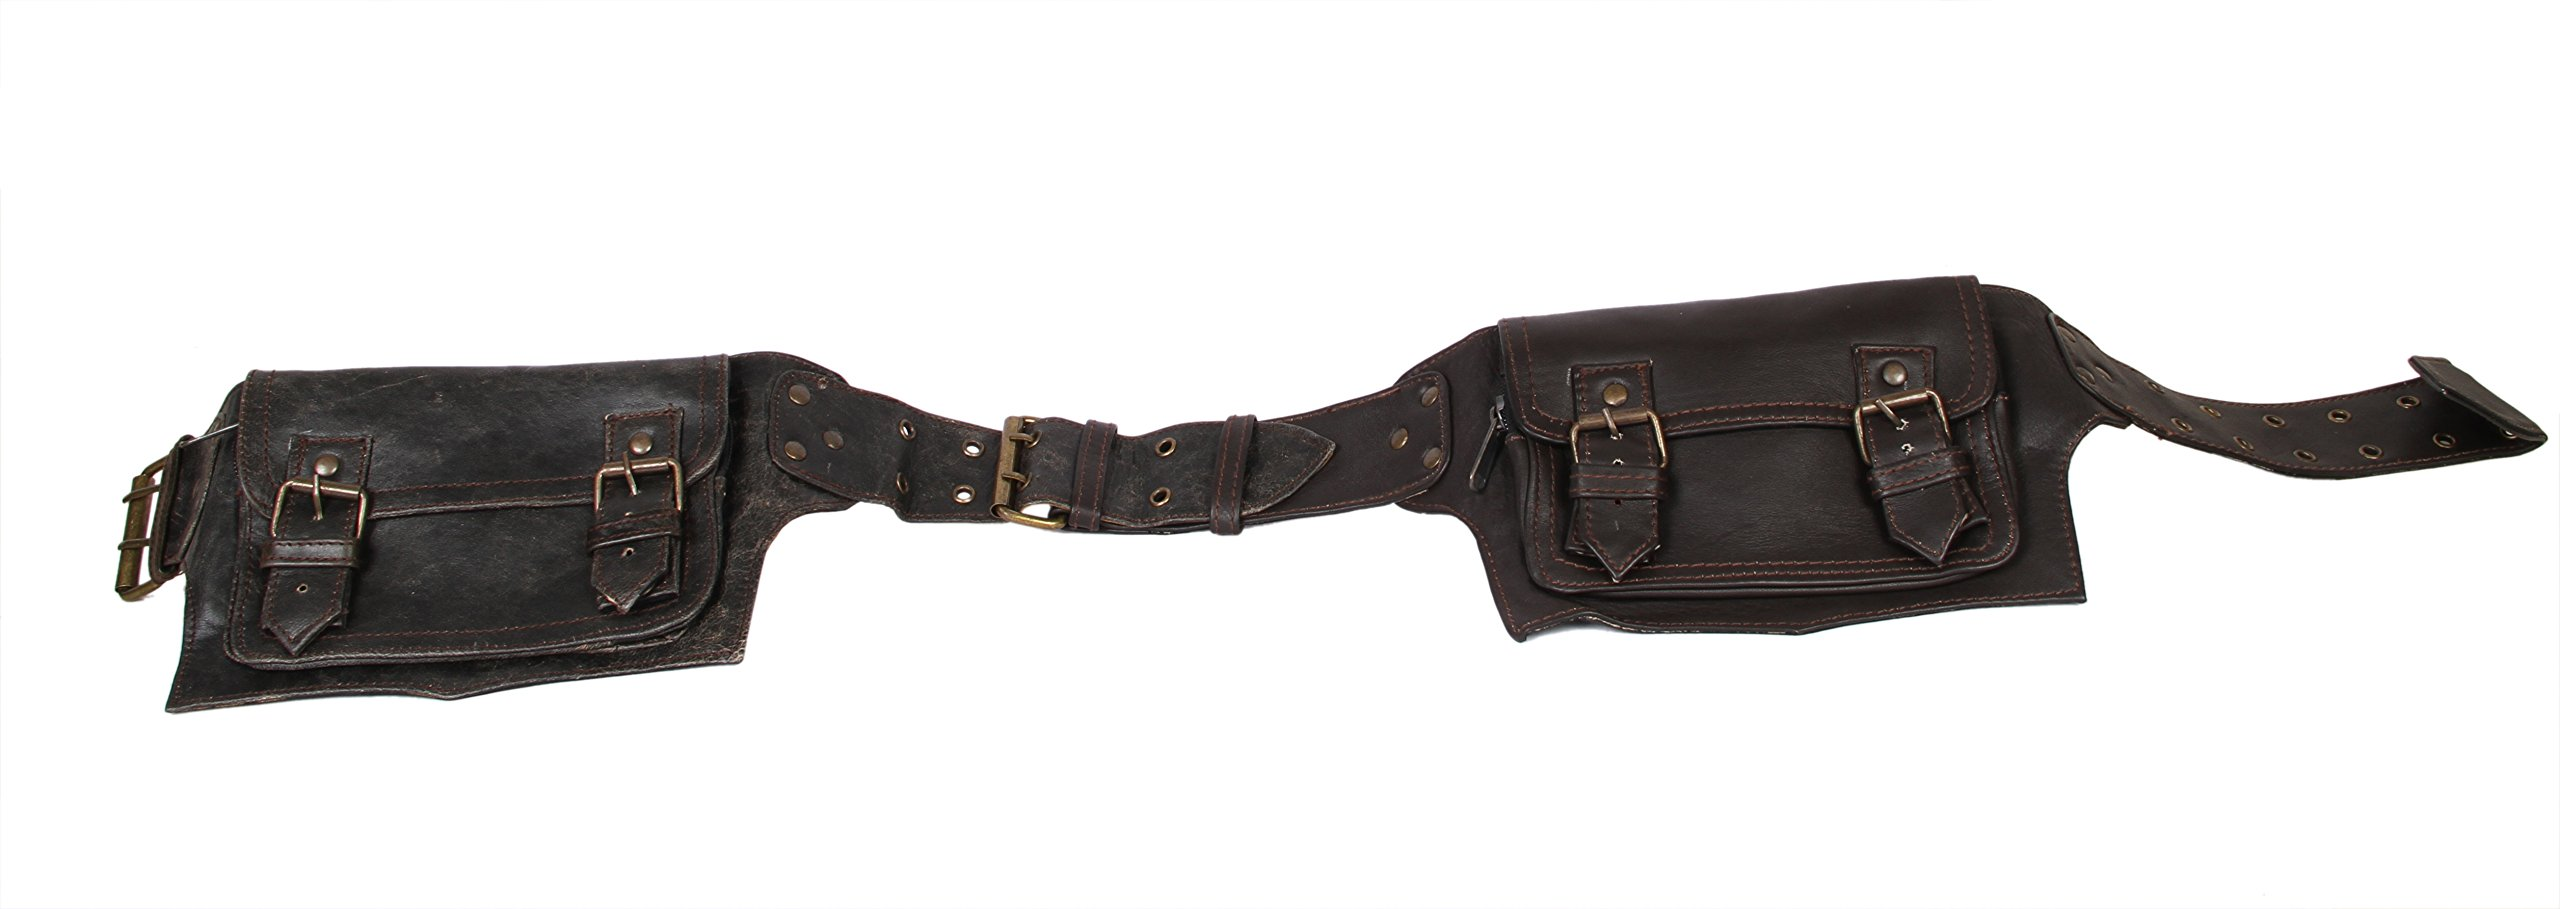 Mens Boys Vintage Leather Messenger Belt Sling School Belt Leather Pouch Messenger Belt Great Christmas Birthday Gift for Families and Friends